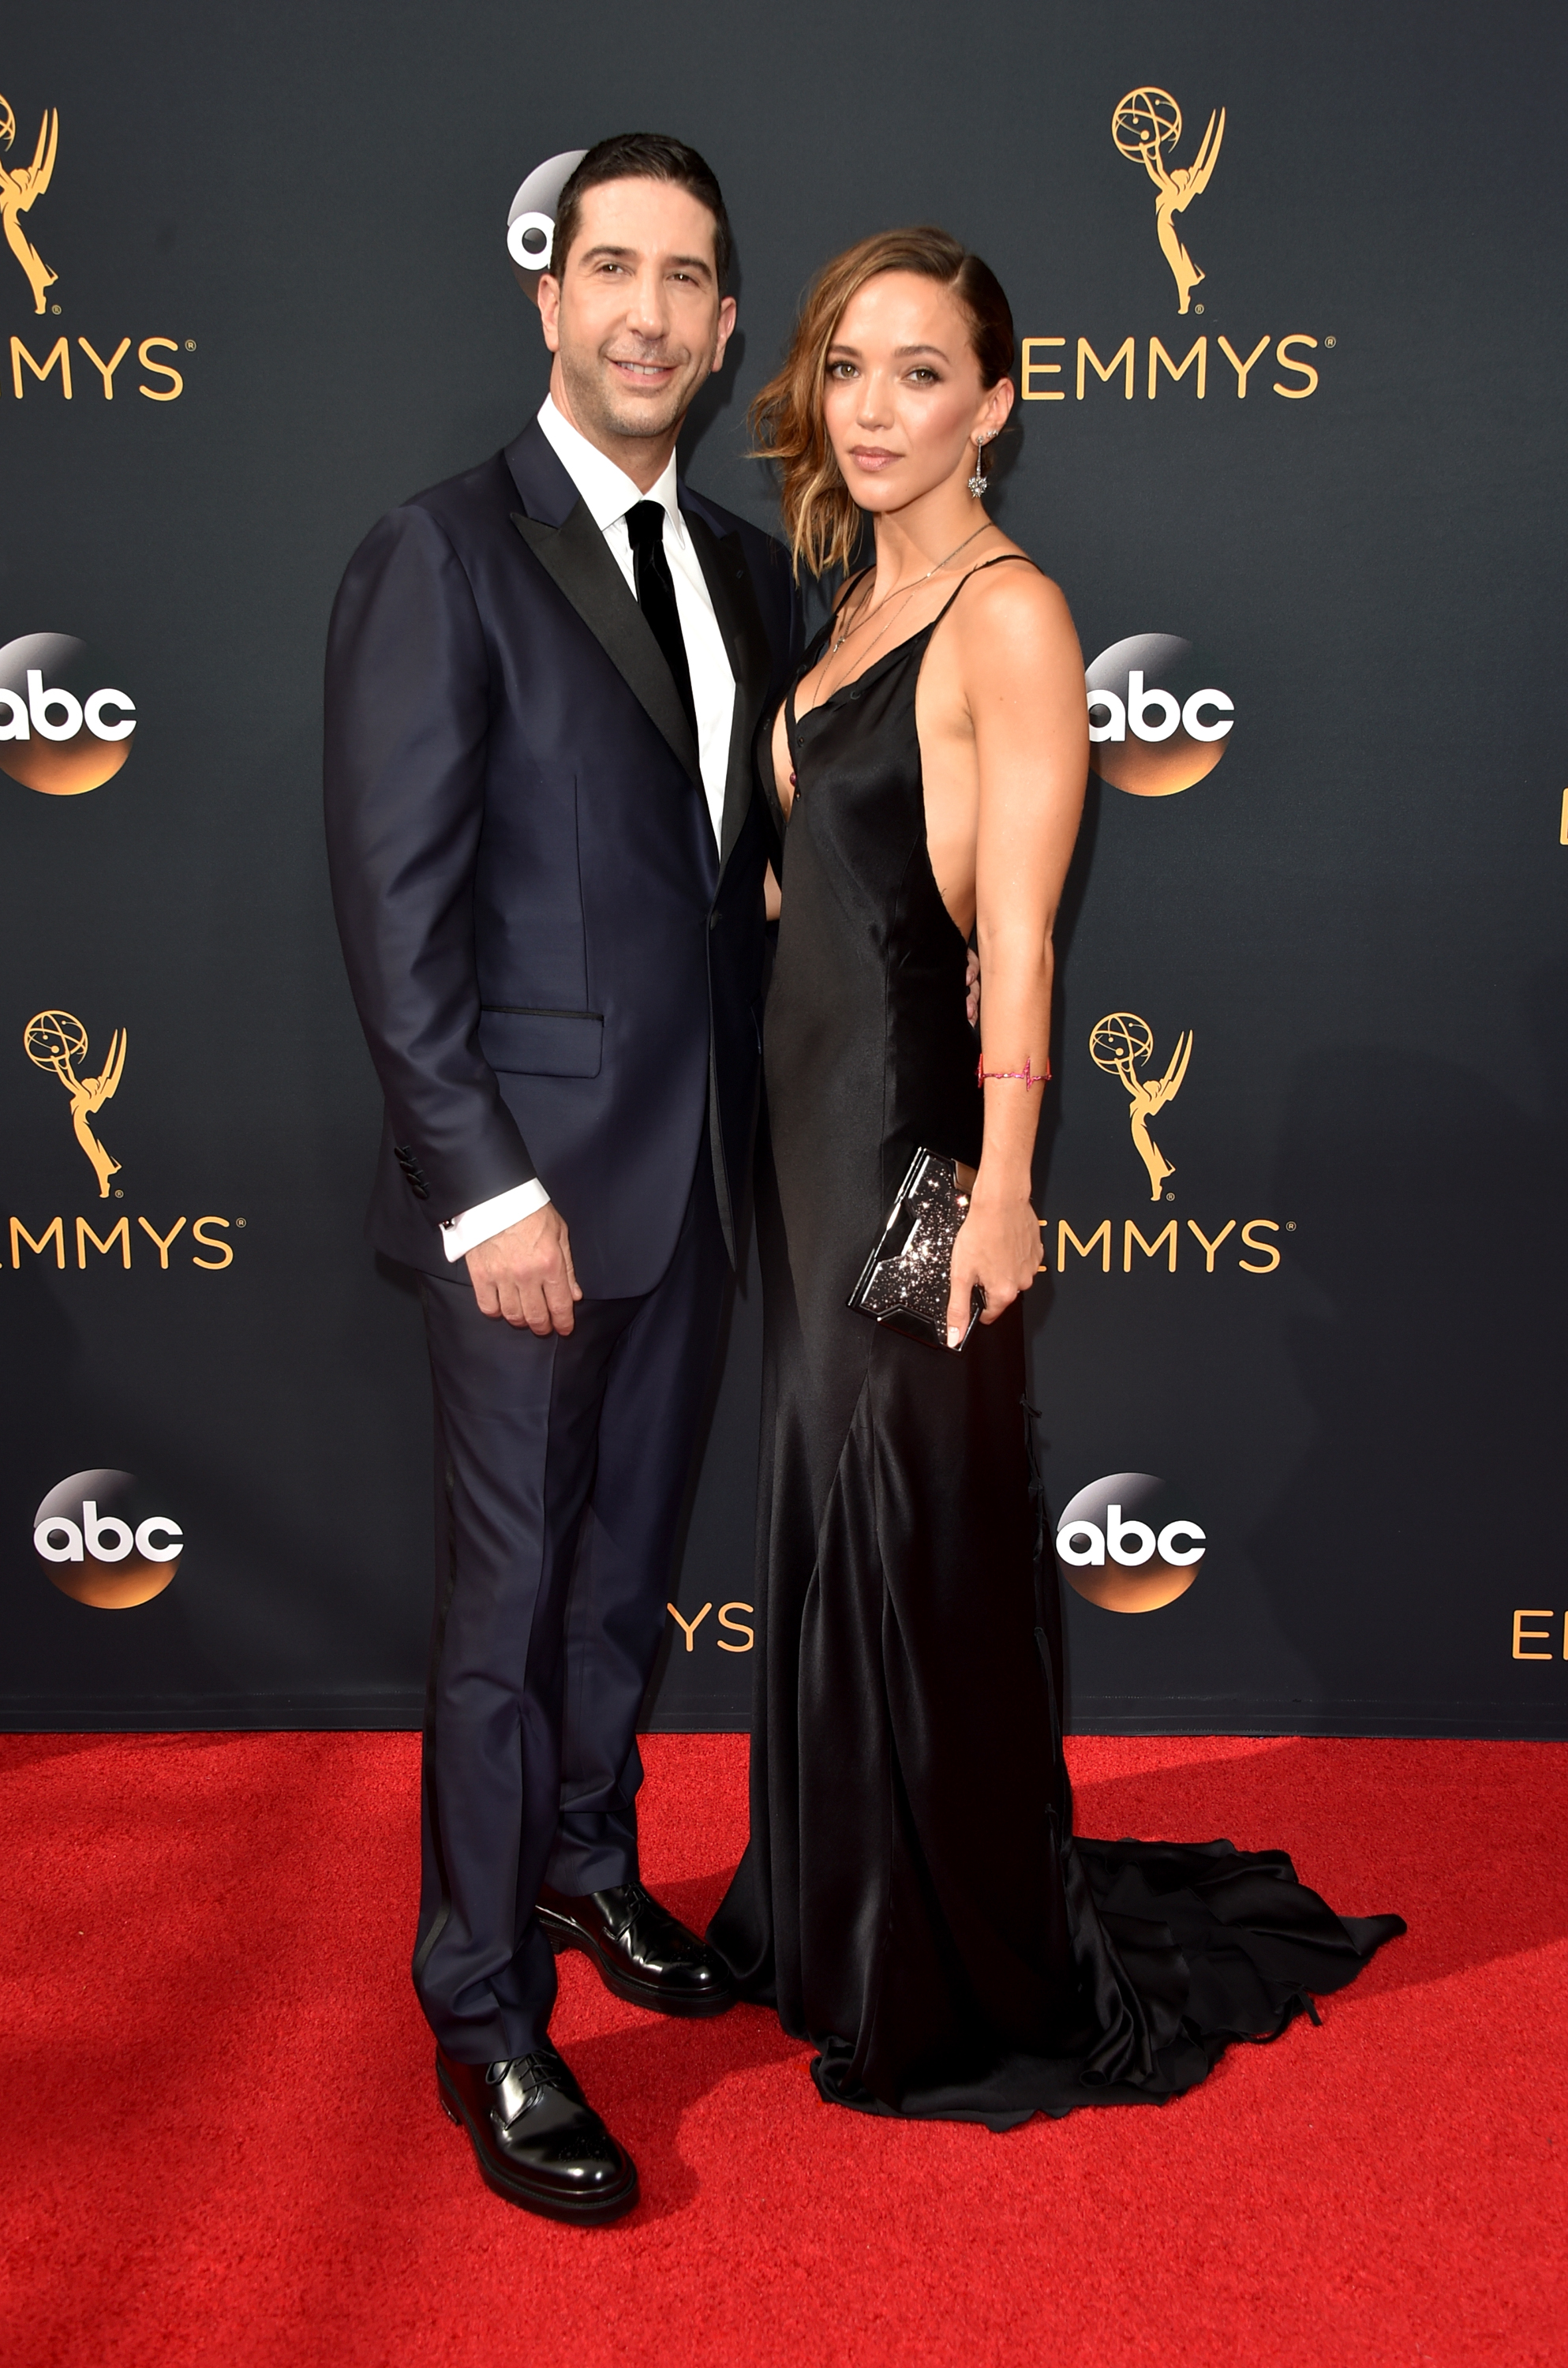 David Schwimmer and Zoe Buckman arrive at the 68th Annual Primetime Emmy Awards at Microsoft Theater on Sept. 18, 2016 in Los Angeles.